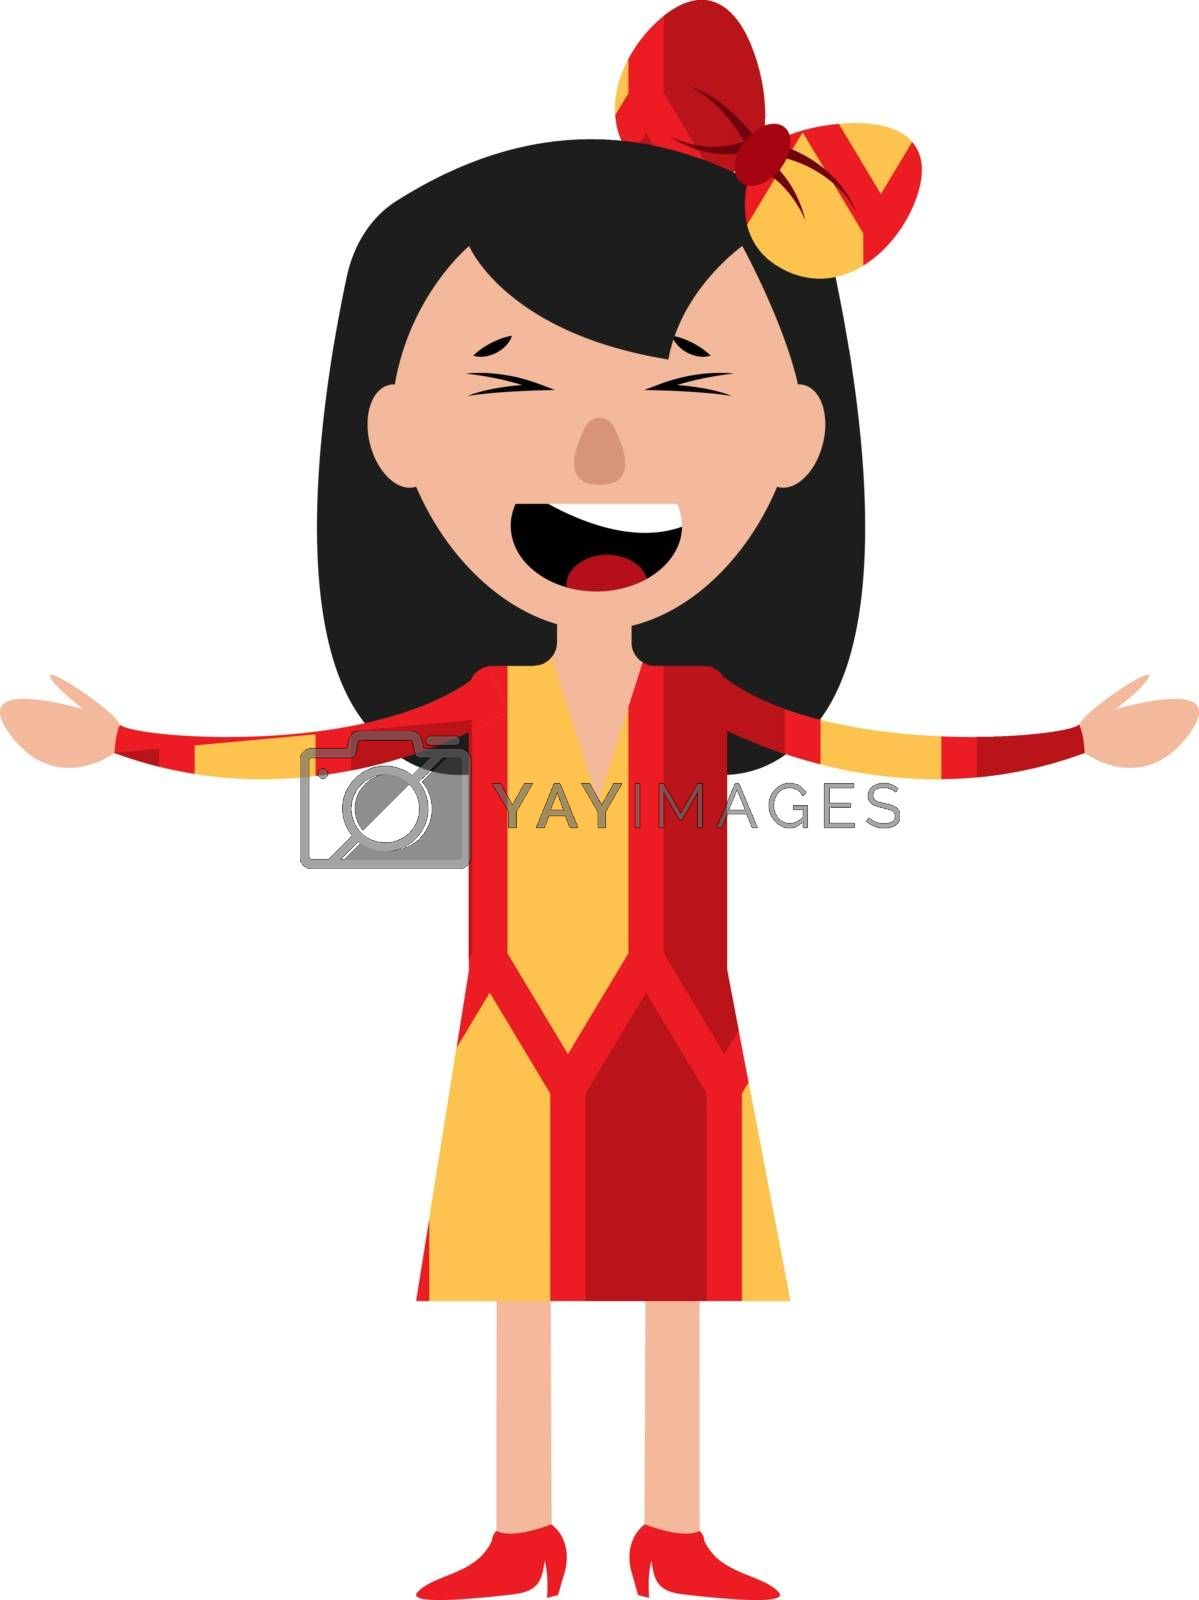 Royalty free image of A happy young girl singing illustration vector on white backgrou by Morphart